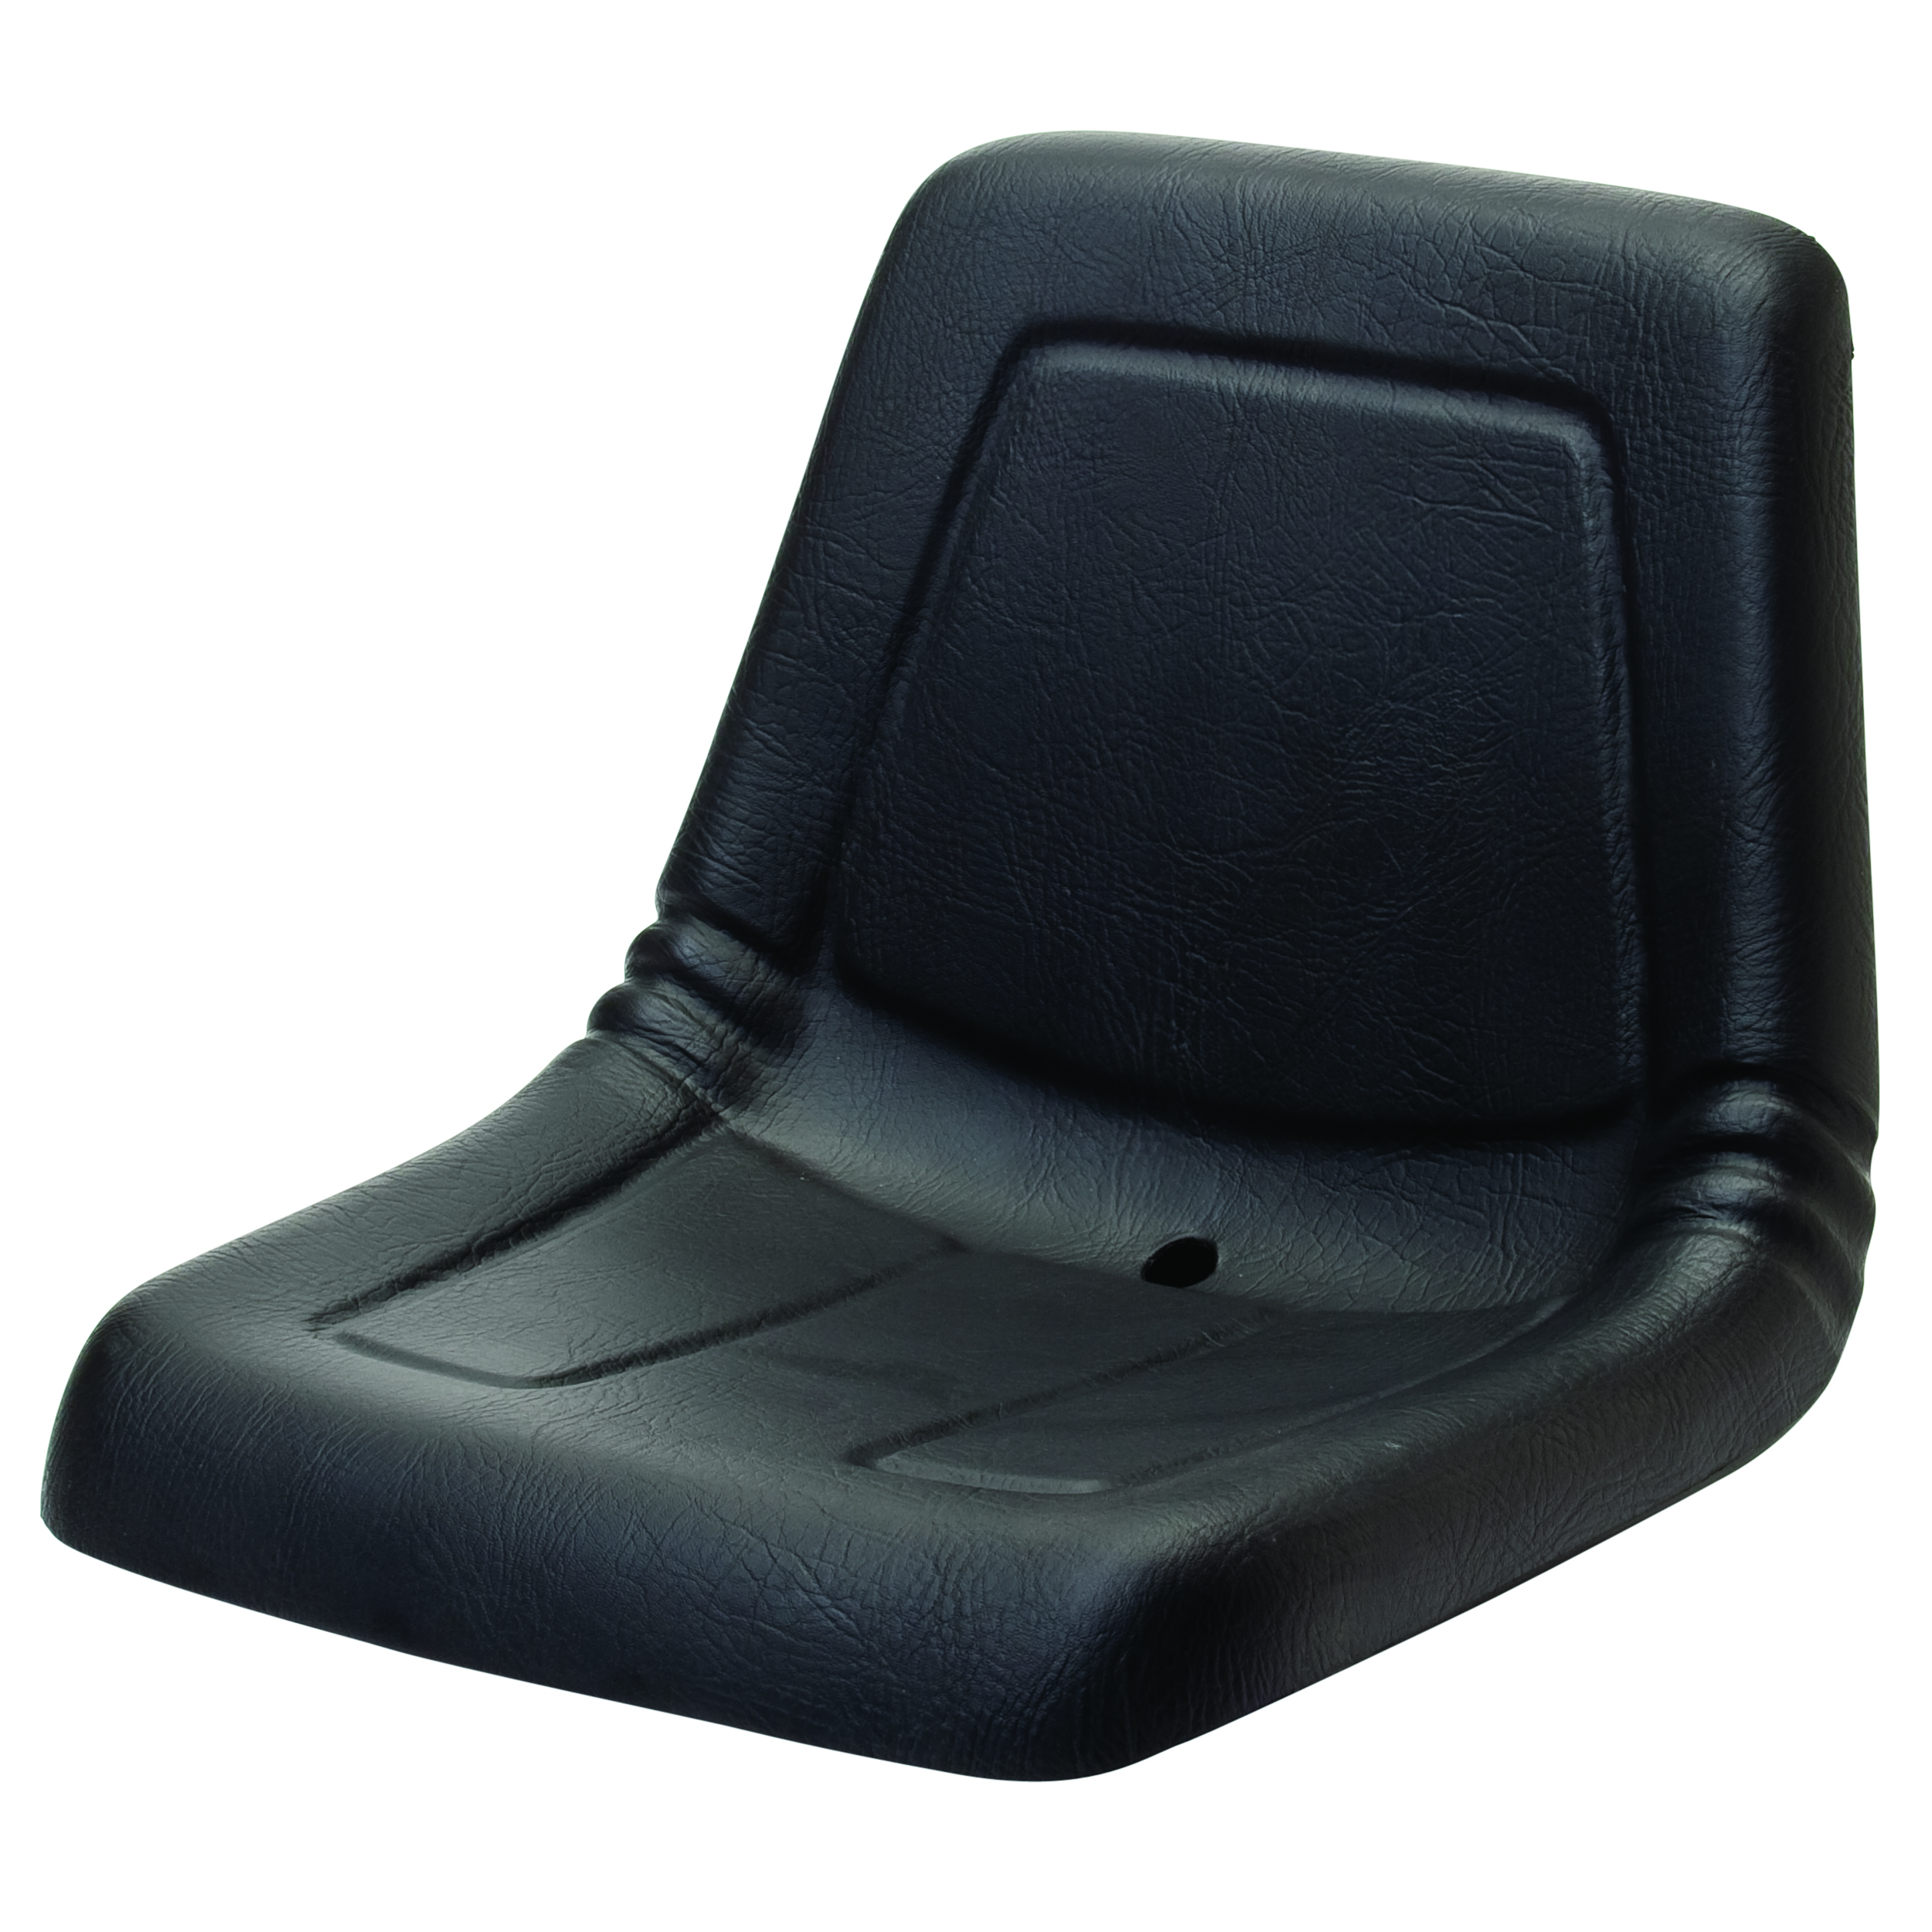 Universal Tractor Seat : Oregon universal high back tractor seat